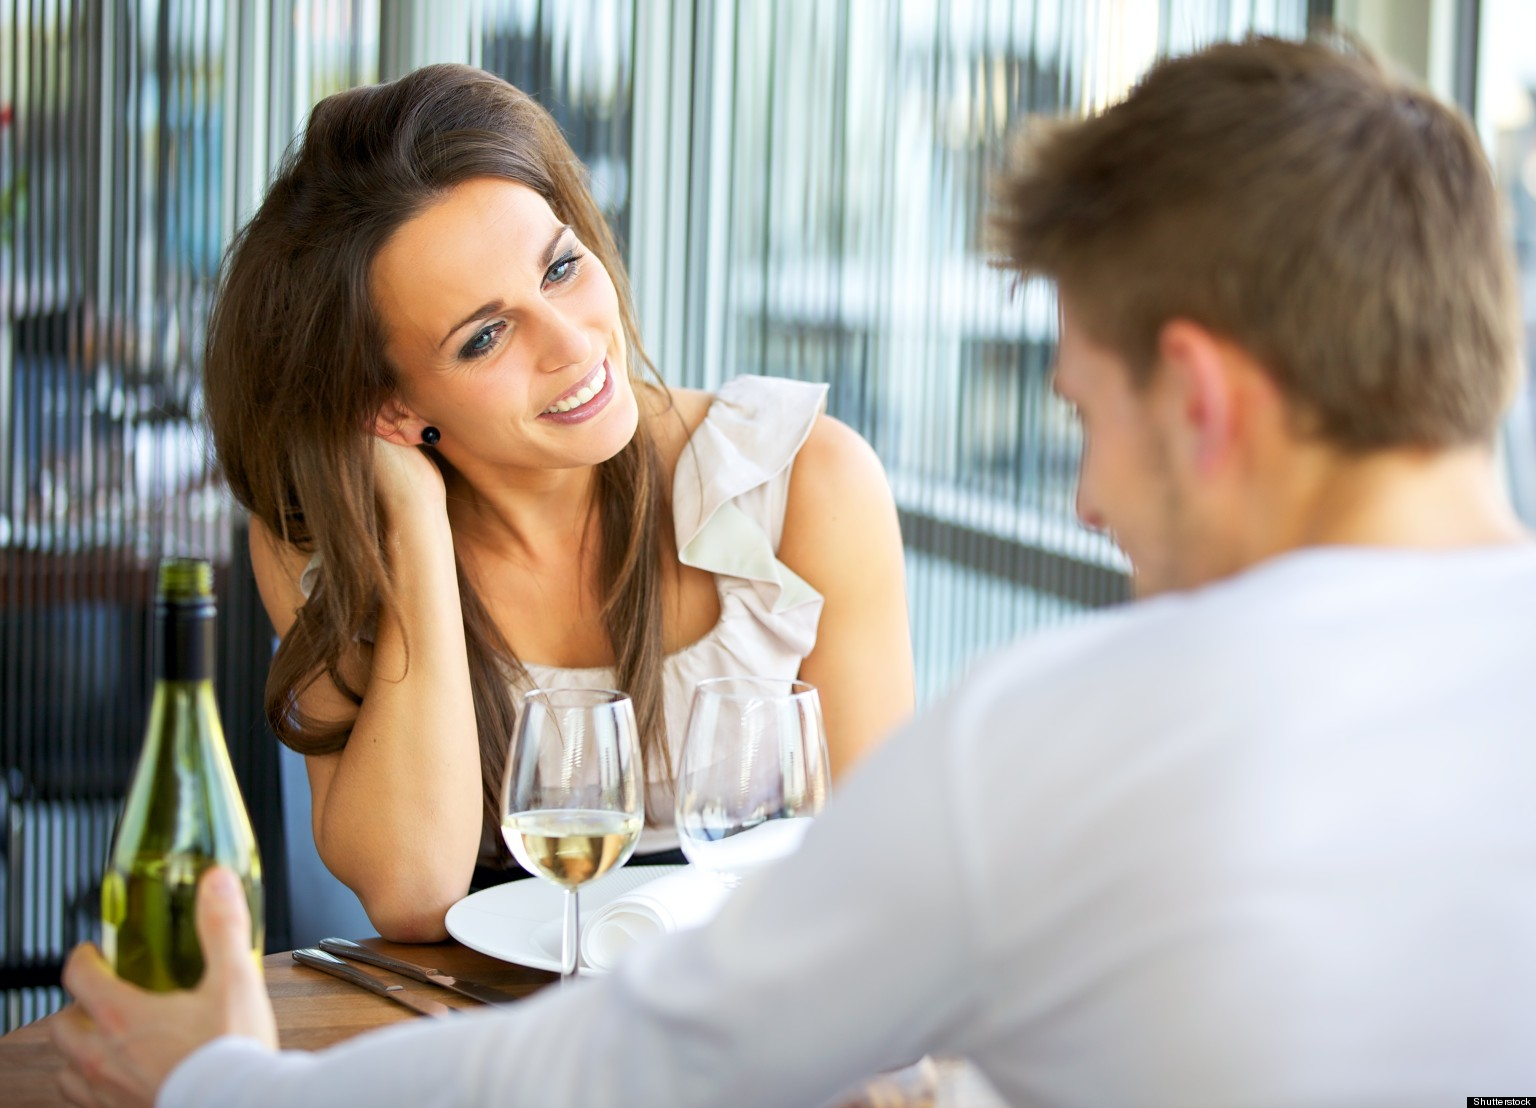 Should I Date Someone Who's Sober if I'm a Social Drinker?